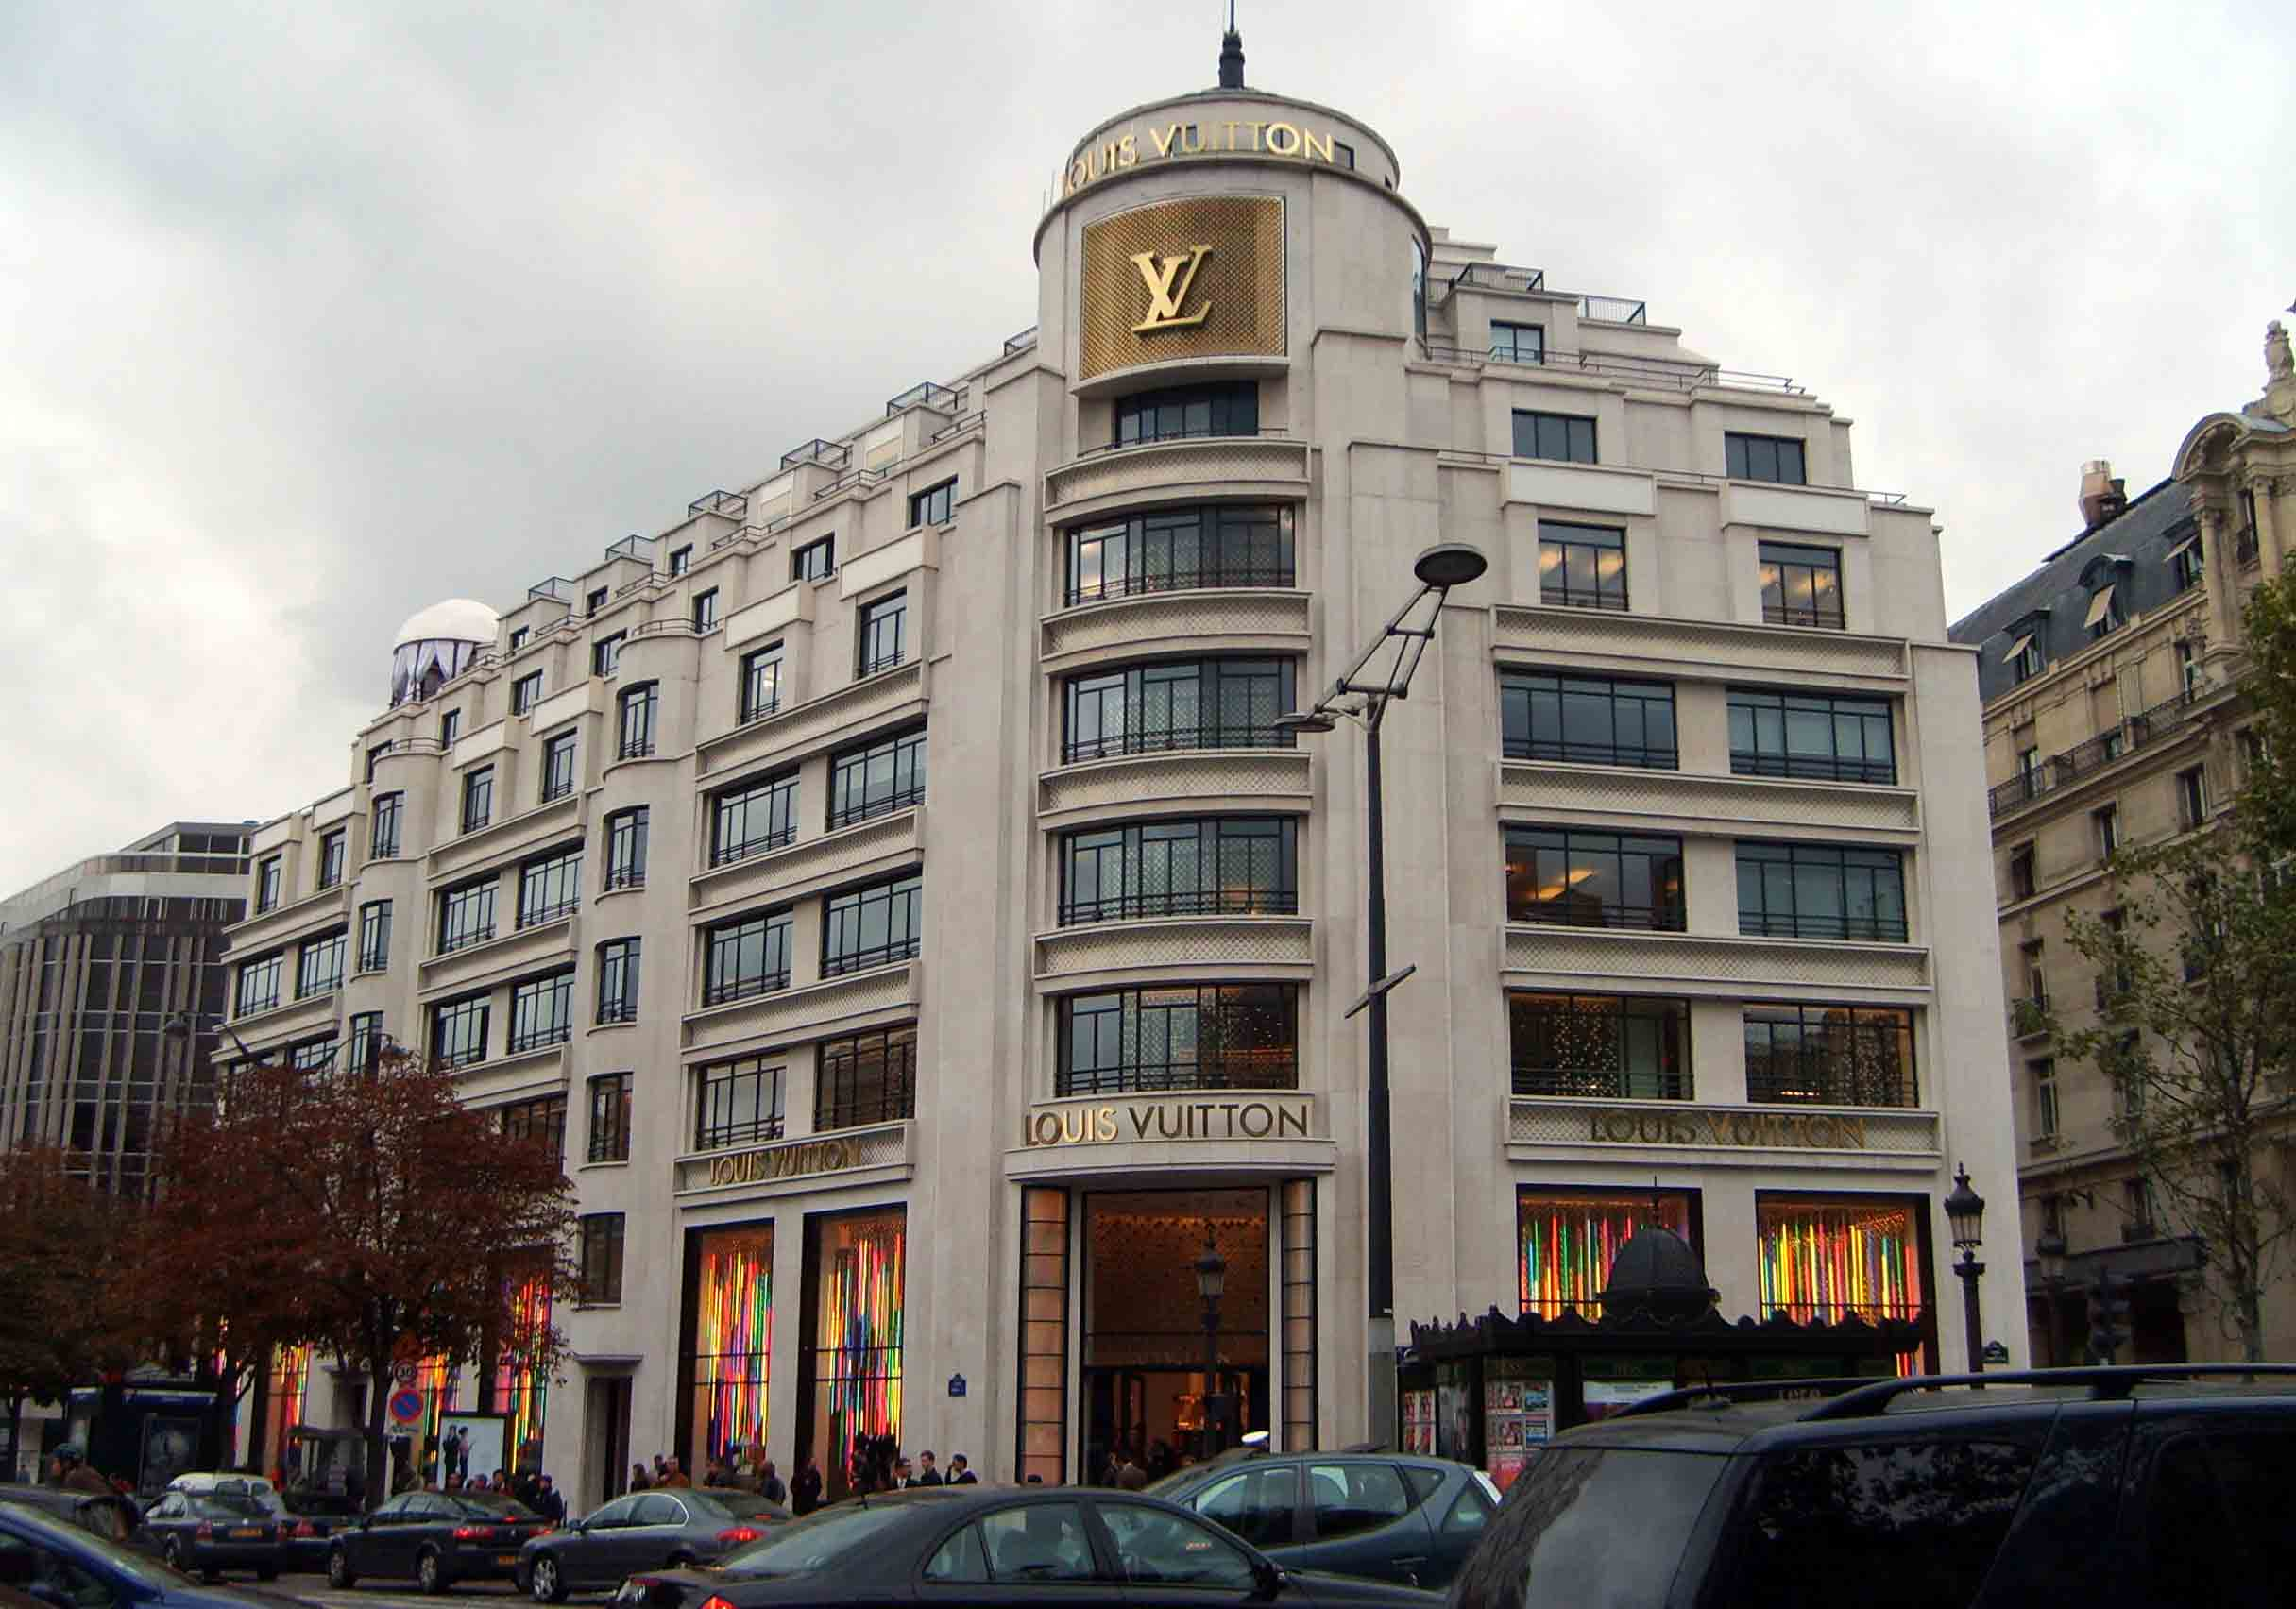 Image Result For Louis Vuitton London